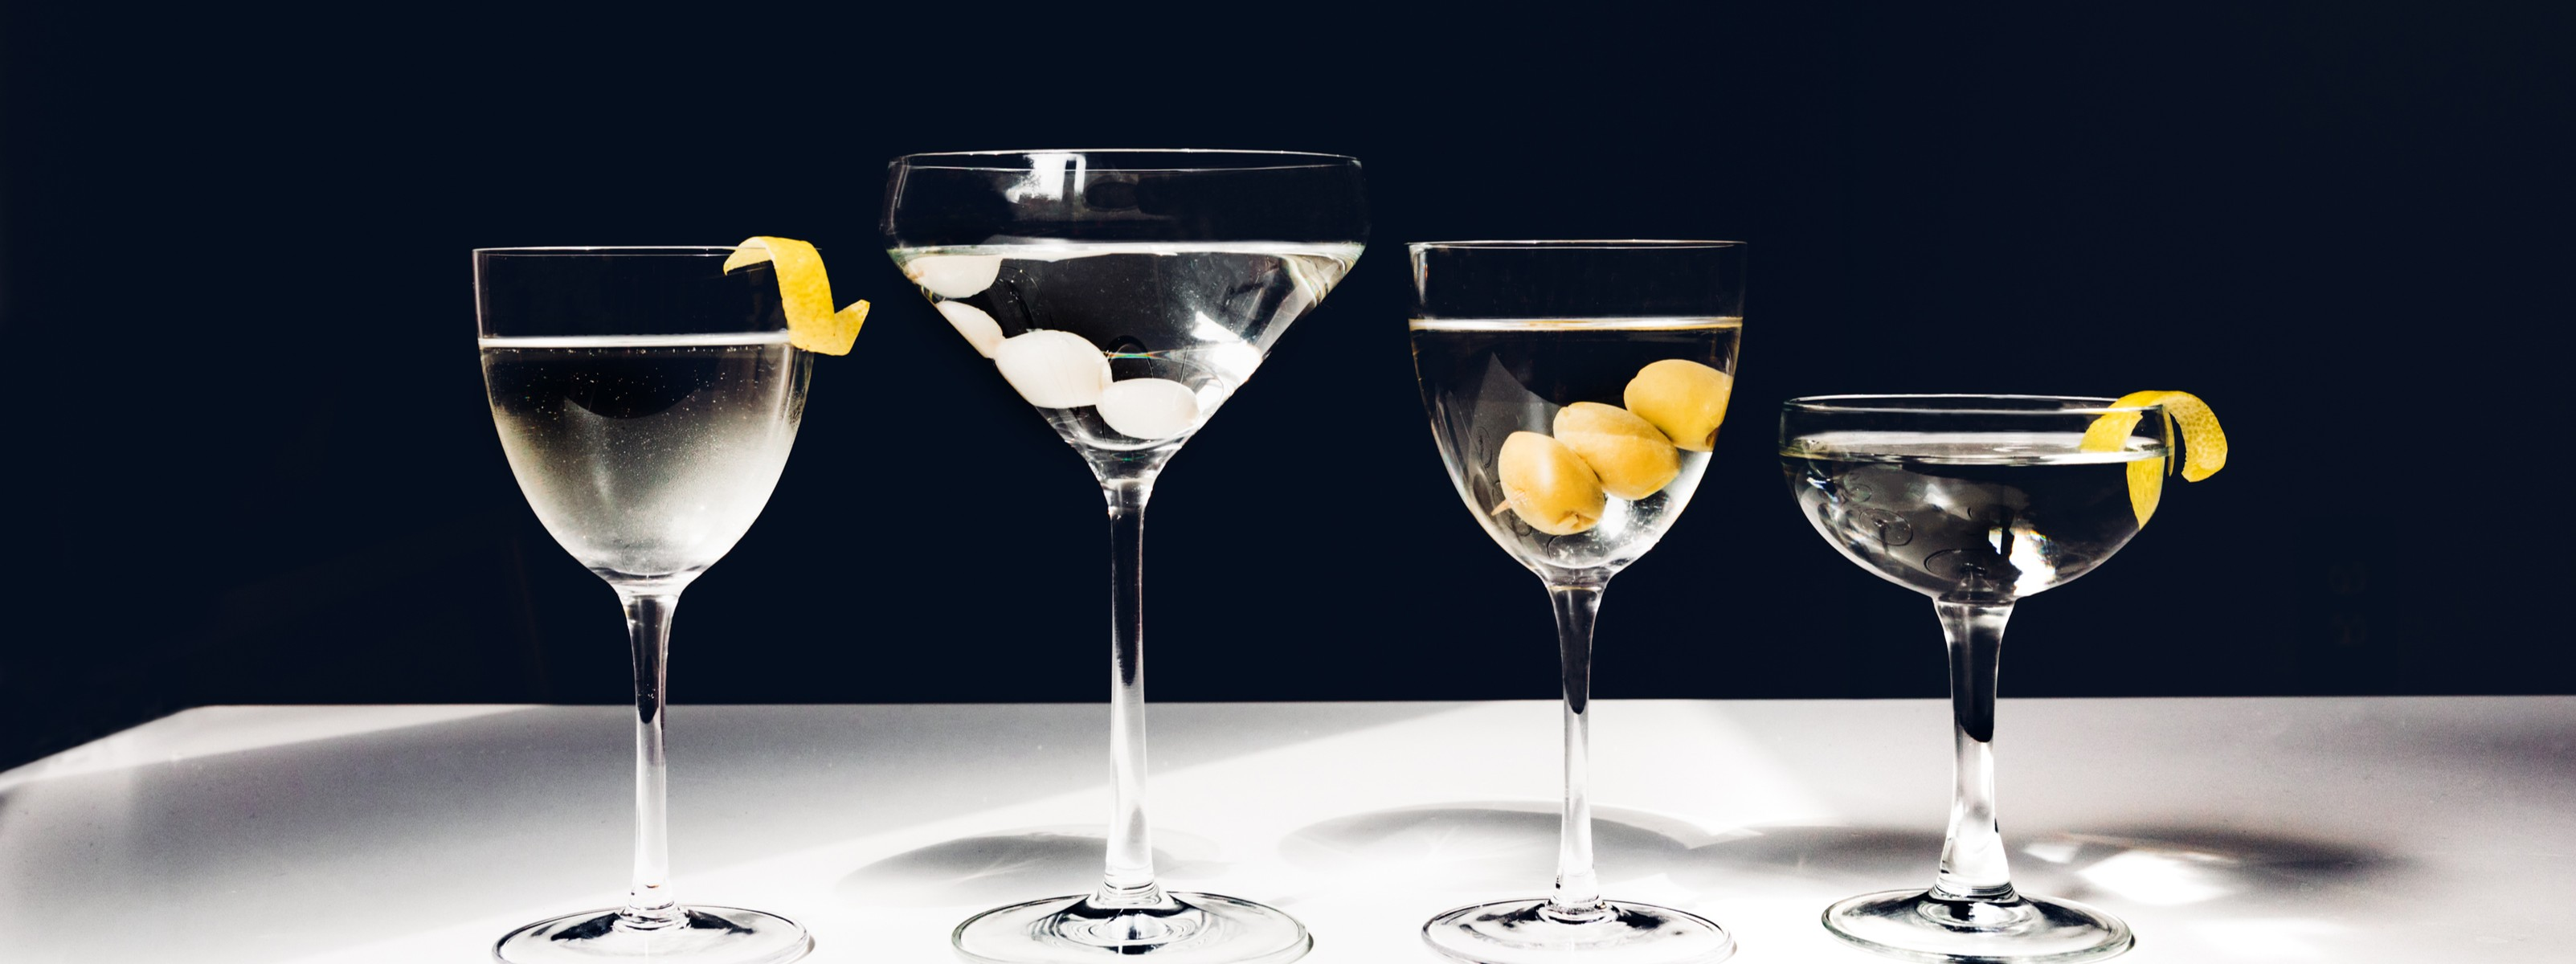 How To Make The Best Martini Variations - The Infatuation